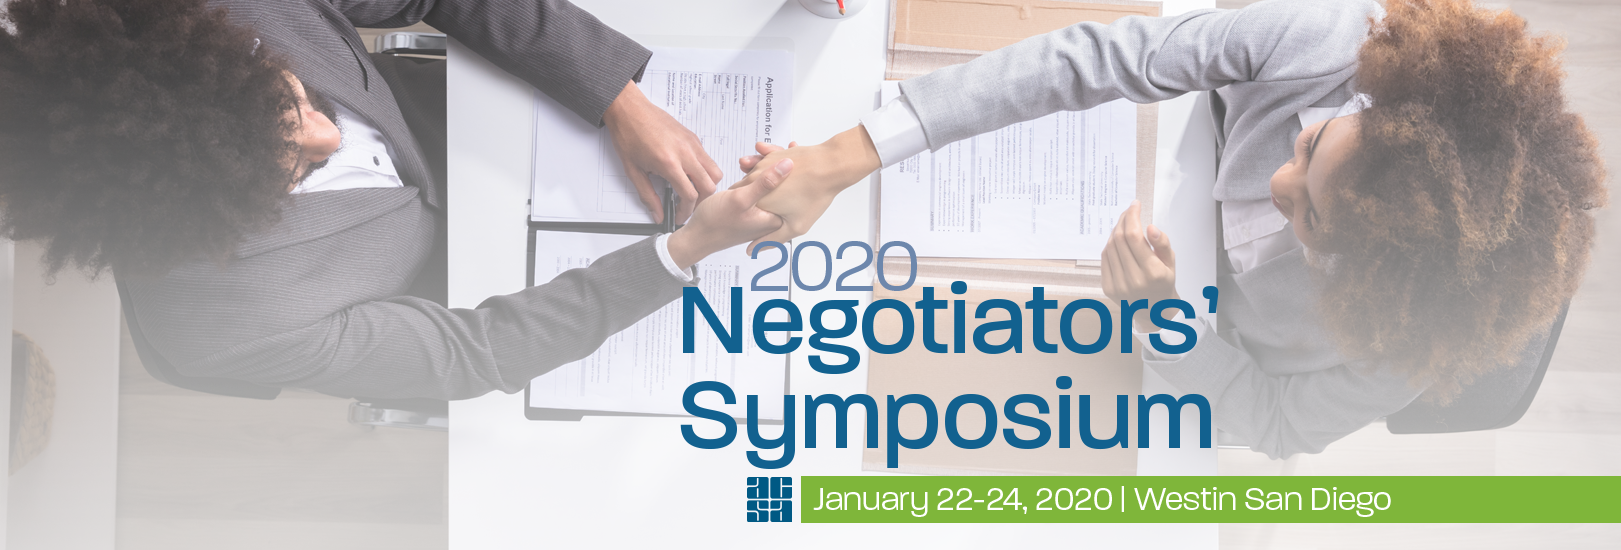 2020 ACSA Negotiators' Symposium